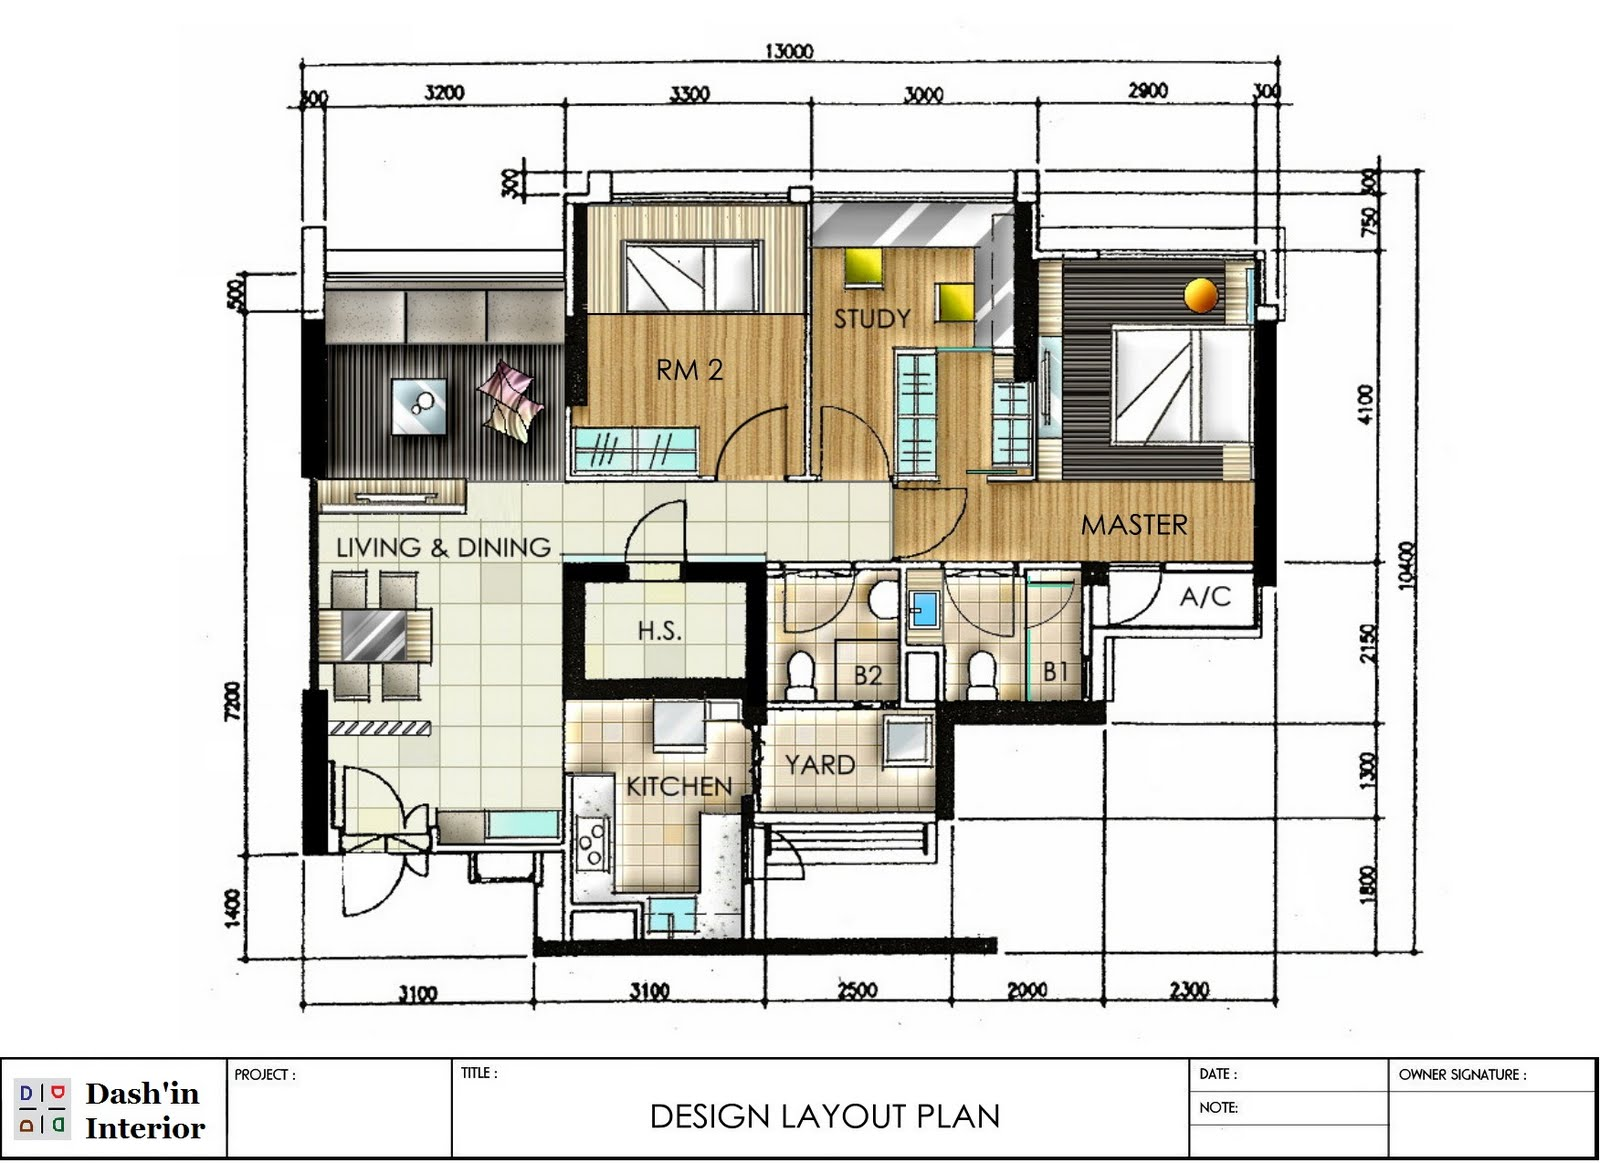 Dash 39 in interior hand drawn designs floor plan layout for Layout design of house